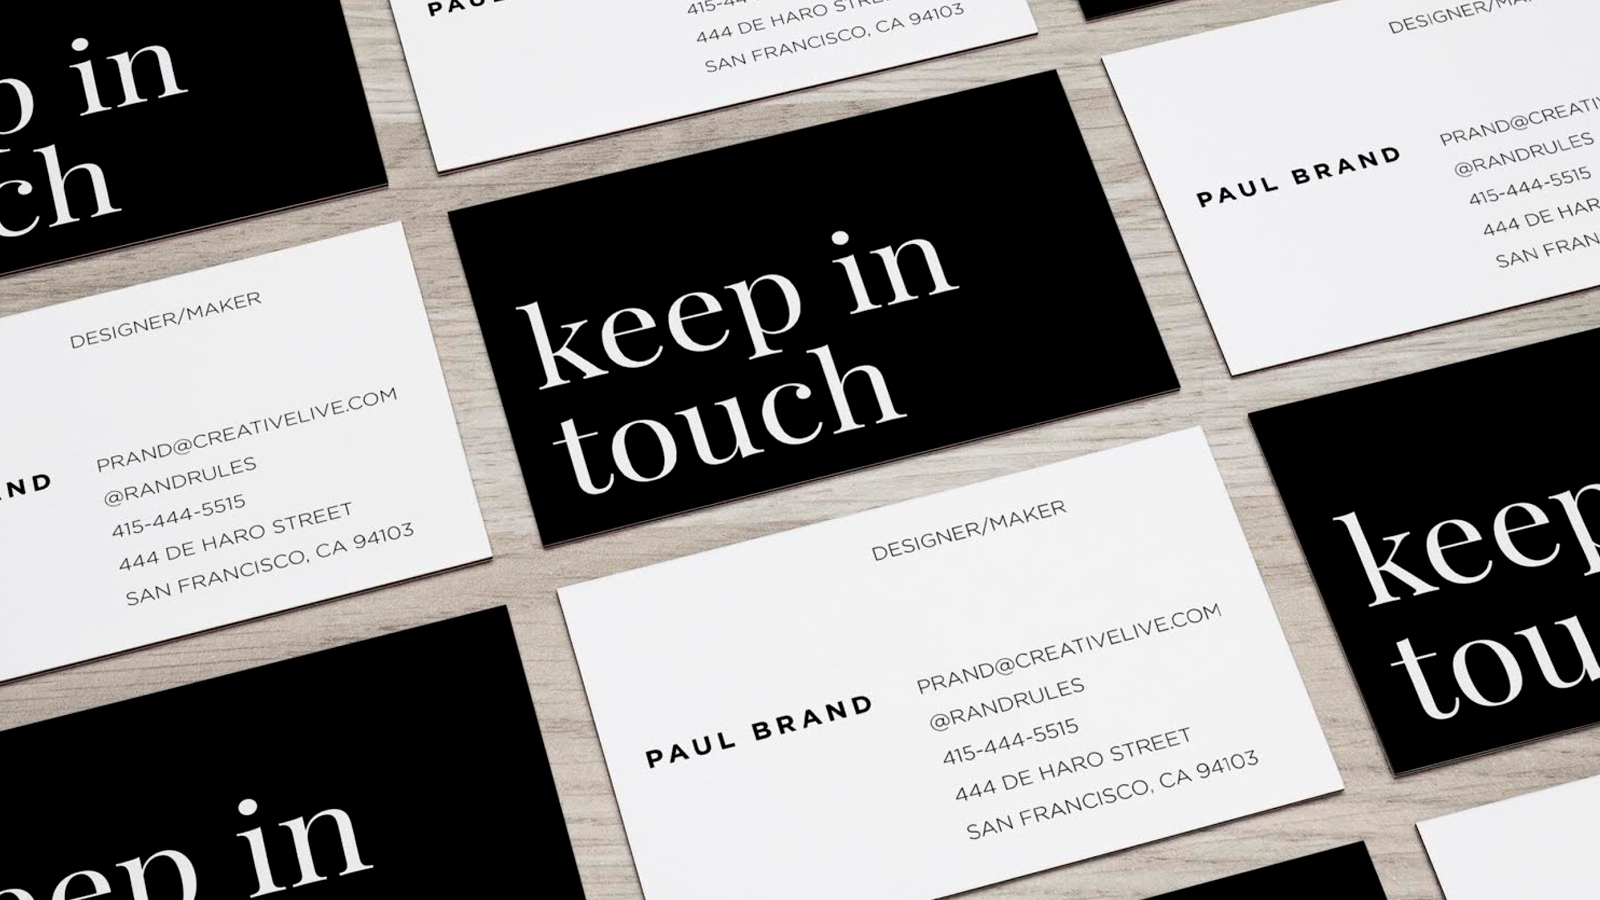 Smart ways of using business cards in networking business card tips places to hand out business cards what to say when handing out business cards colourmoves